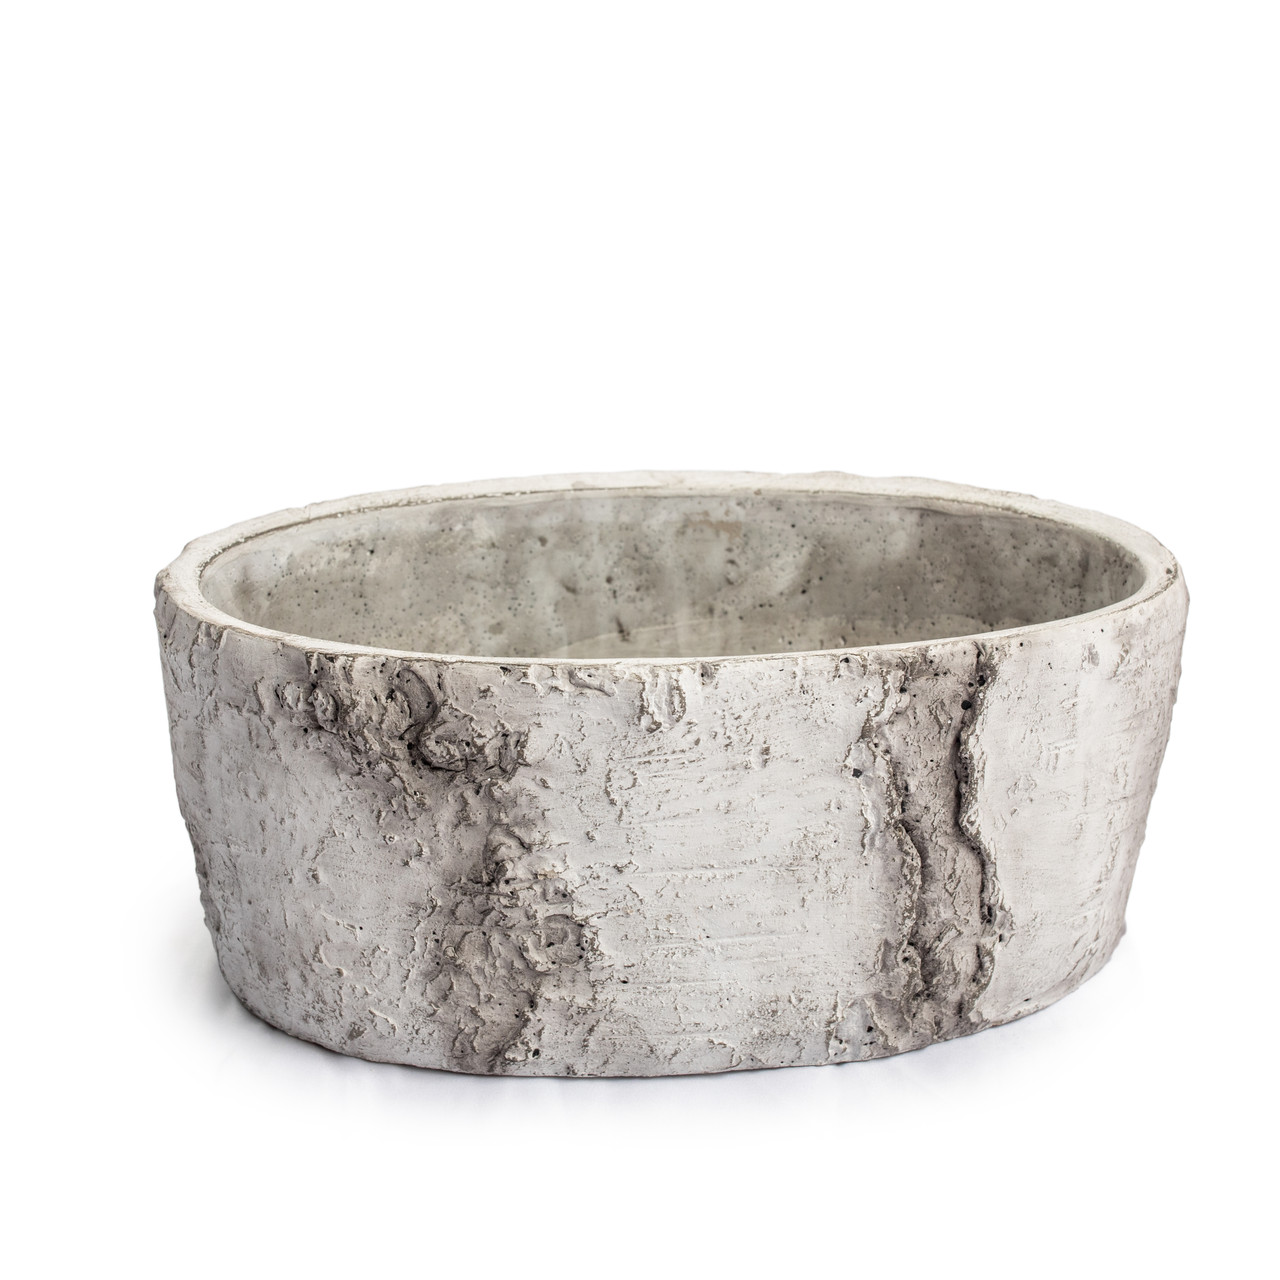 Medium Shallow Cement Pot with Rounded Bottom